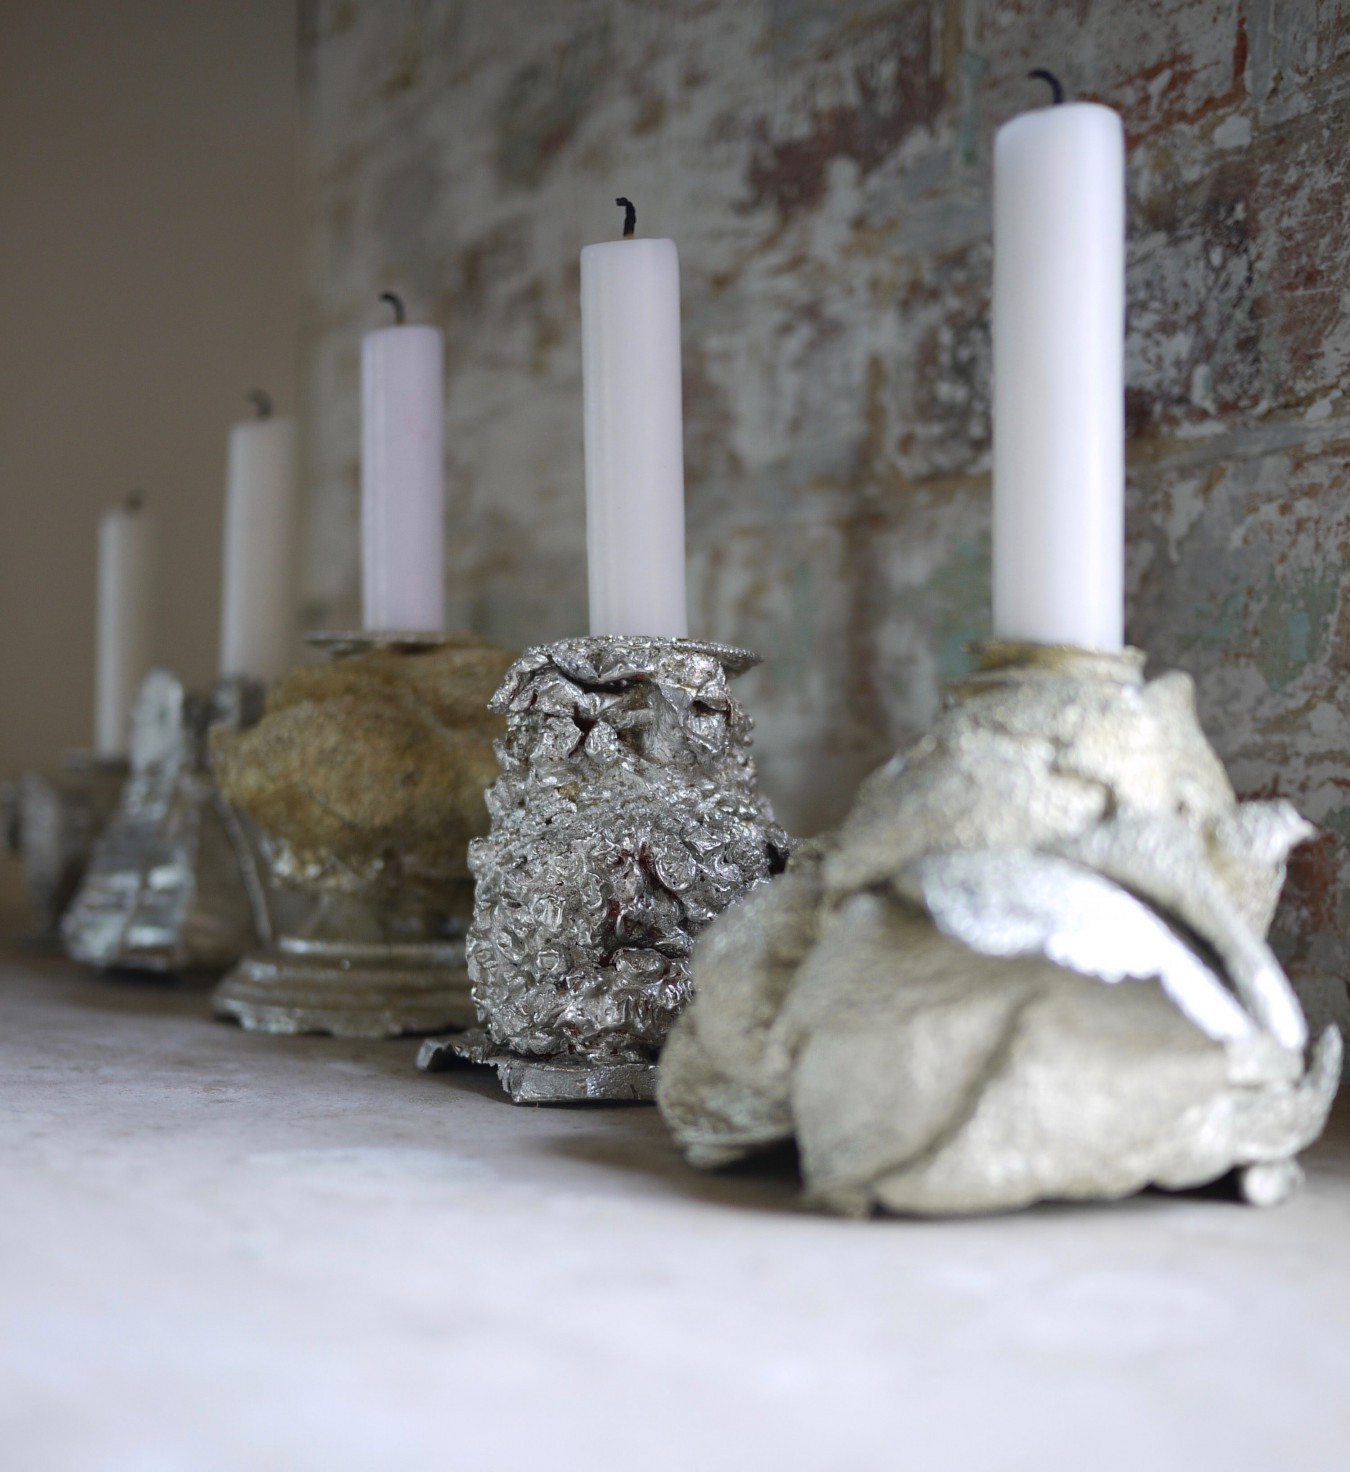 Image of 5 cast pewter candlesticks. The packaging material has been kept wrapped around the silver candlestick a mould made and a casting of the wrapped candlestick then produced equalling all materials to one; pewter